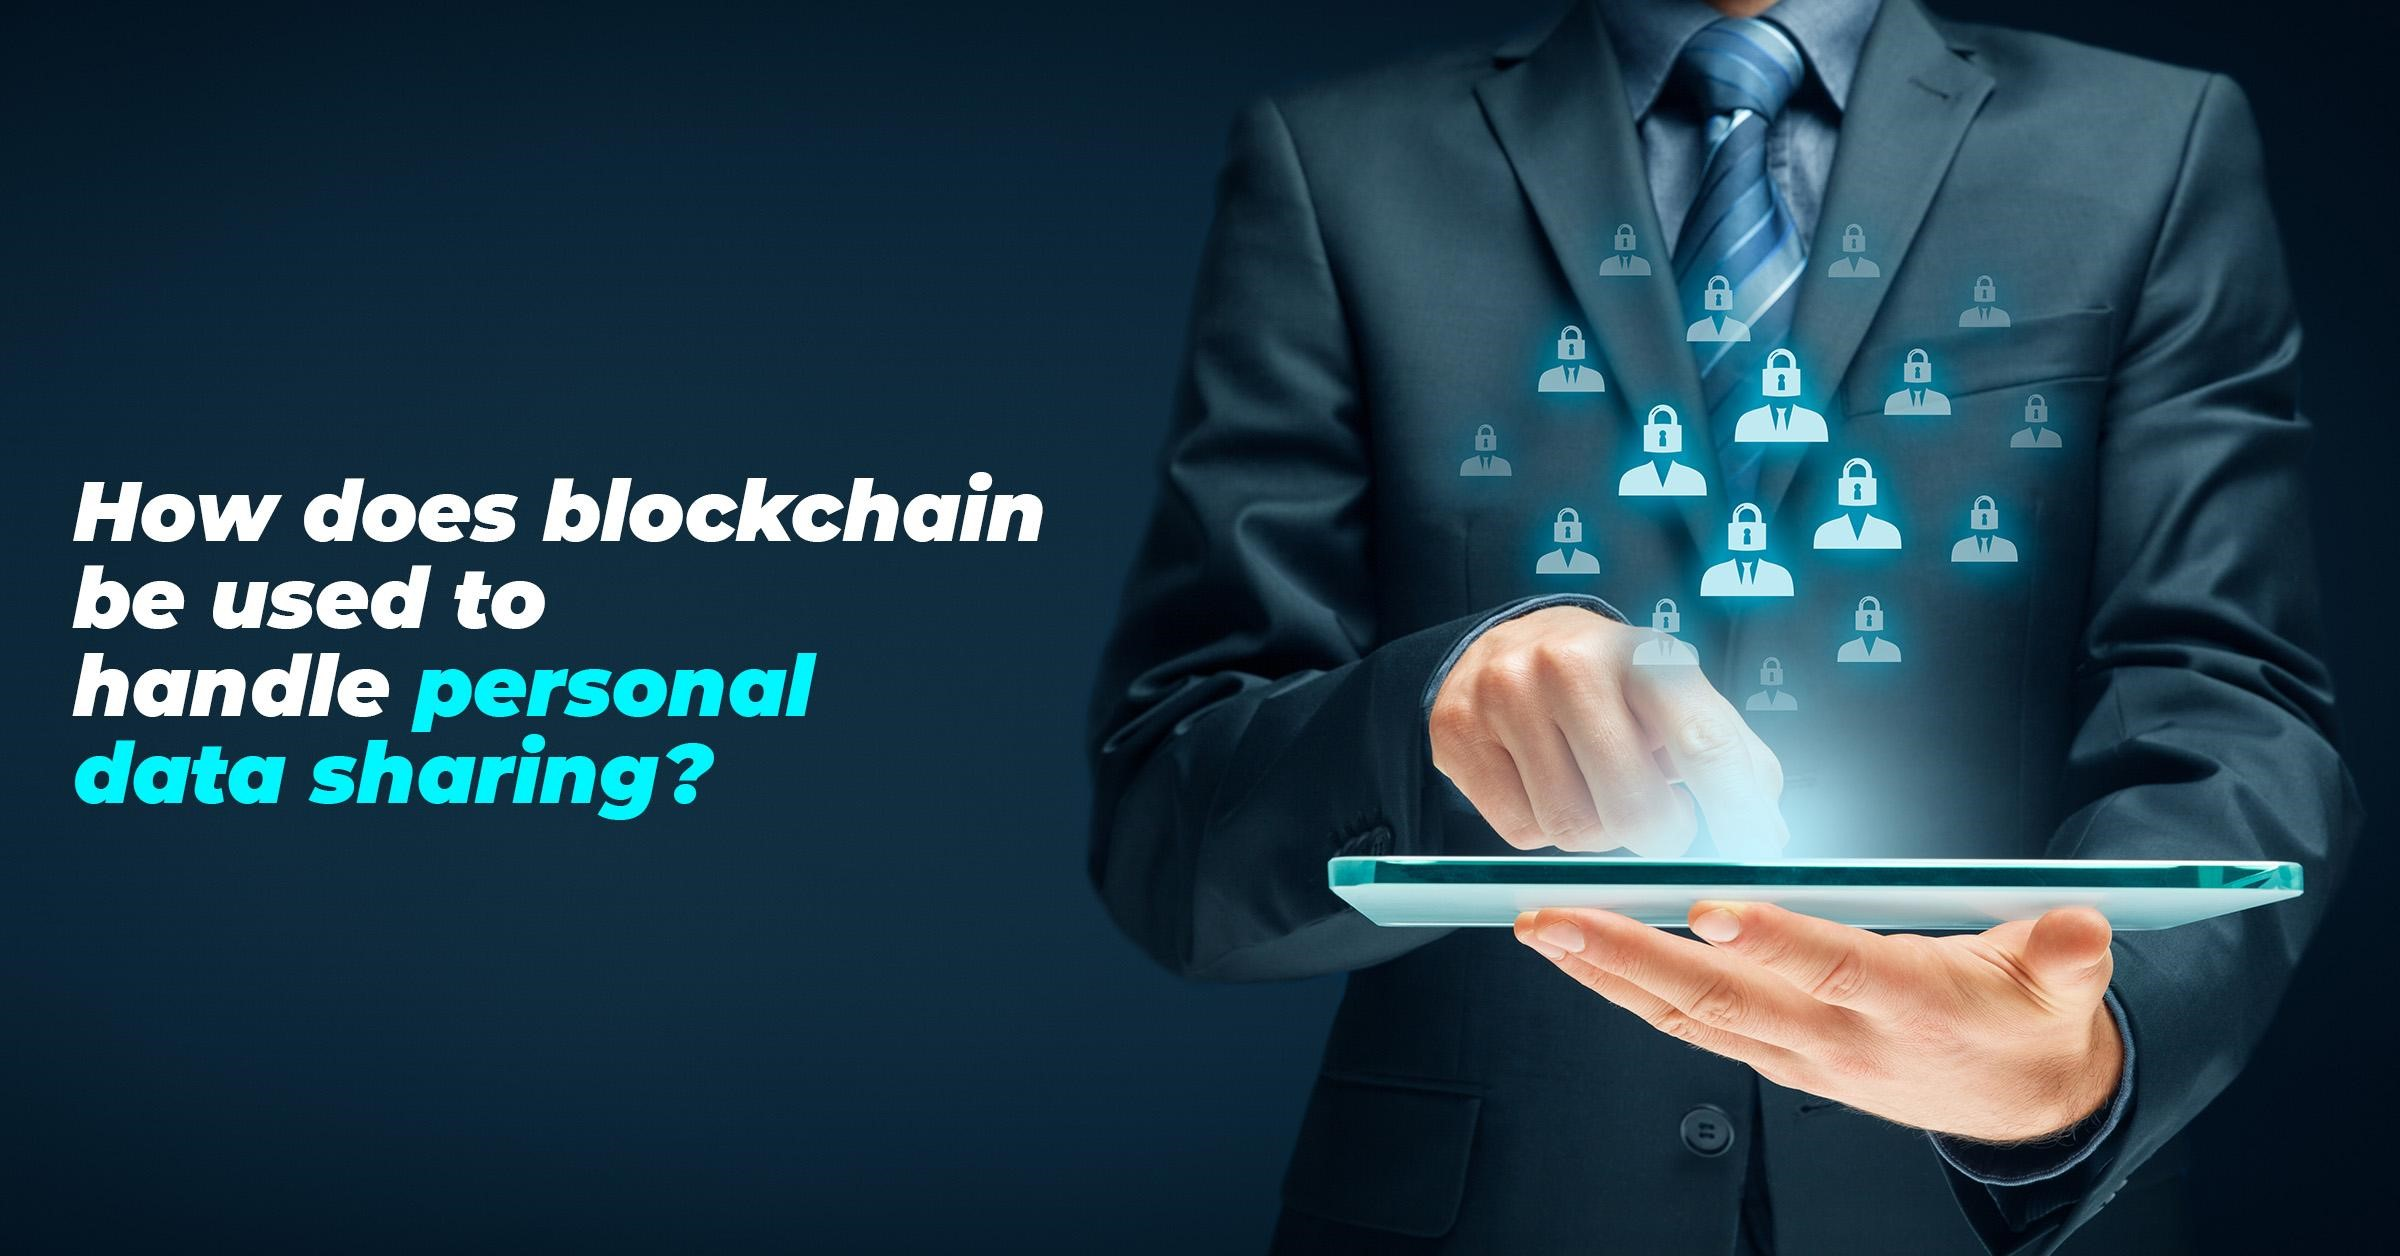 Blockchain Be Used to Handle Personal Data Sharing